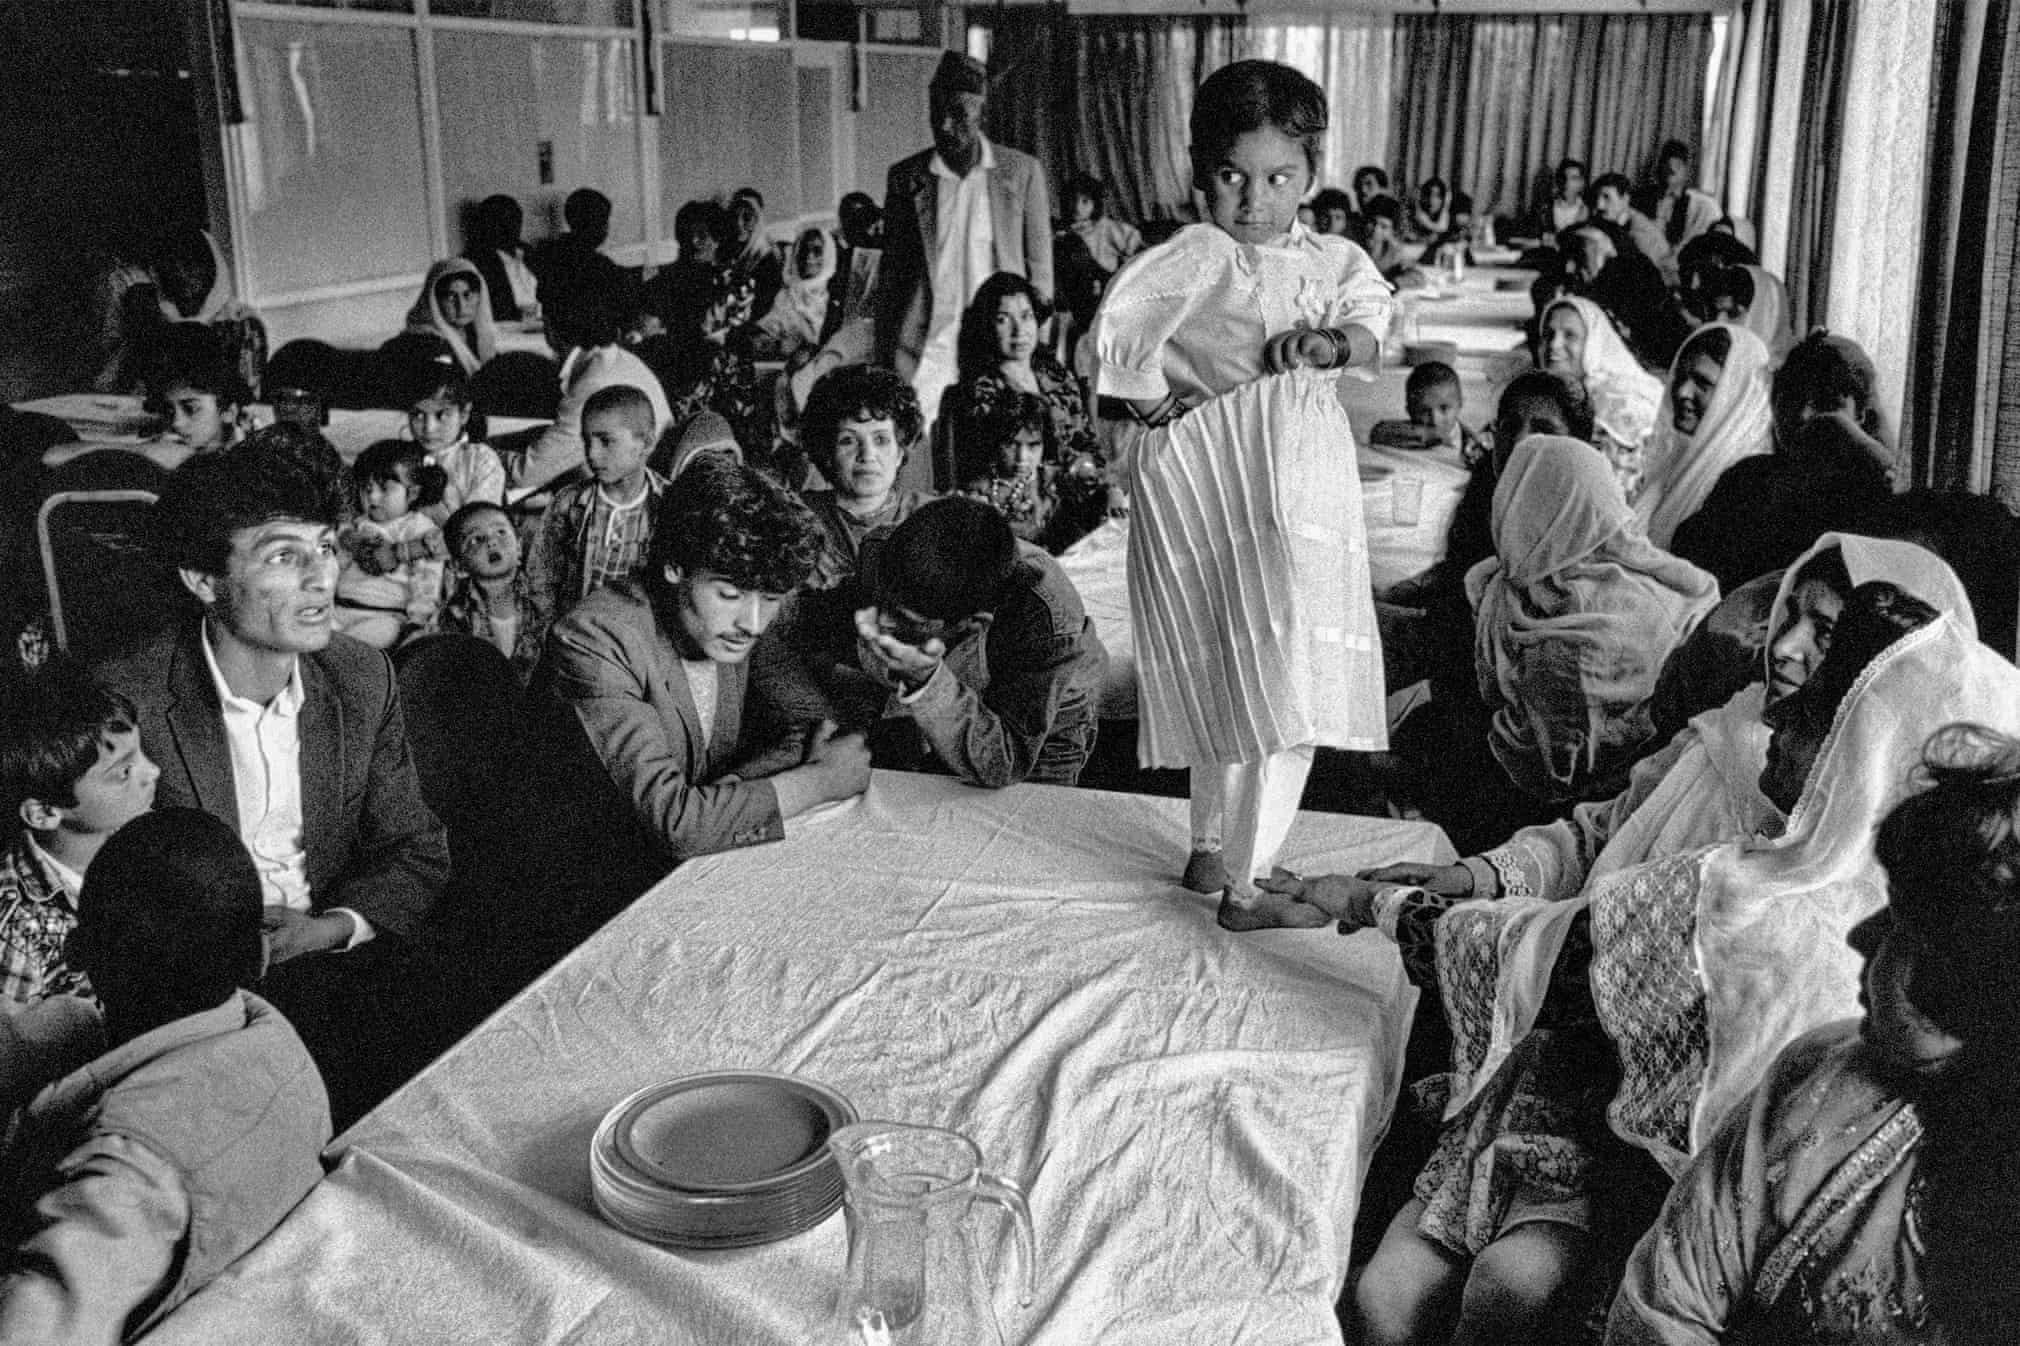 A wedding party in a restaurant, Kabul, Afghanistan, 1991